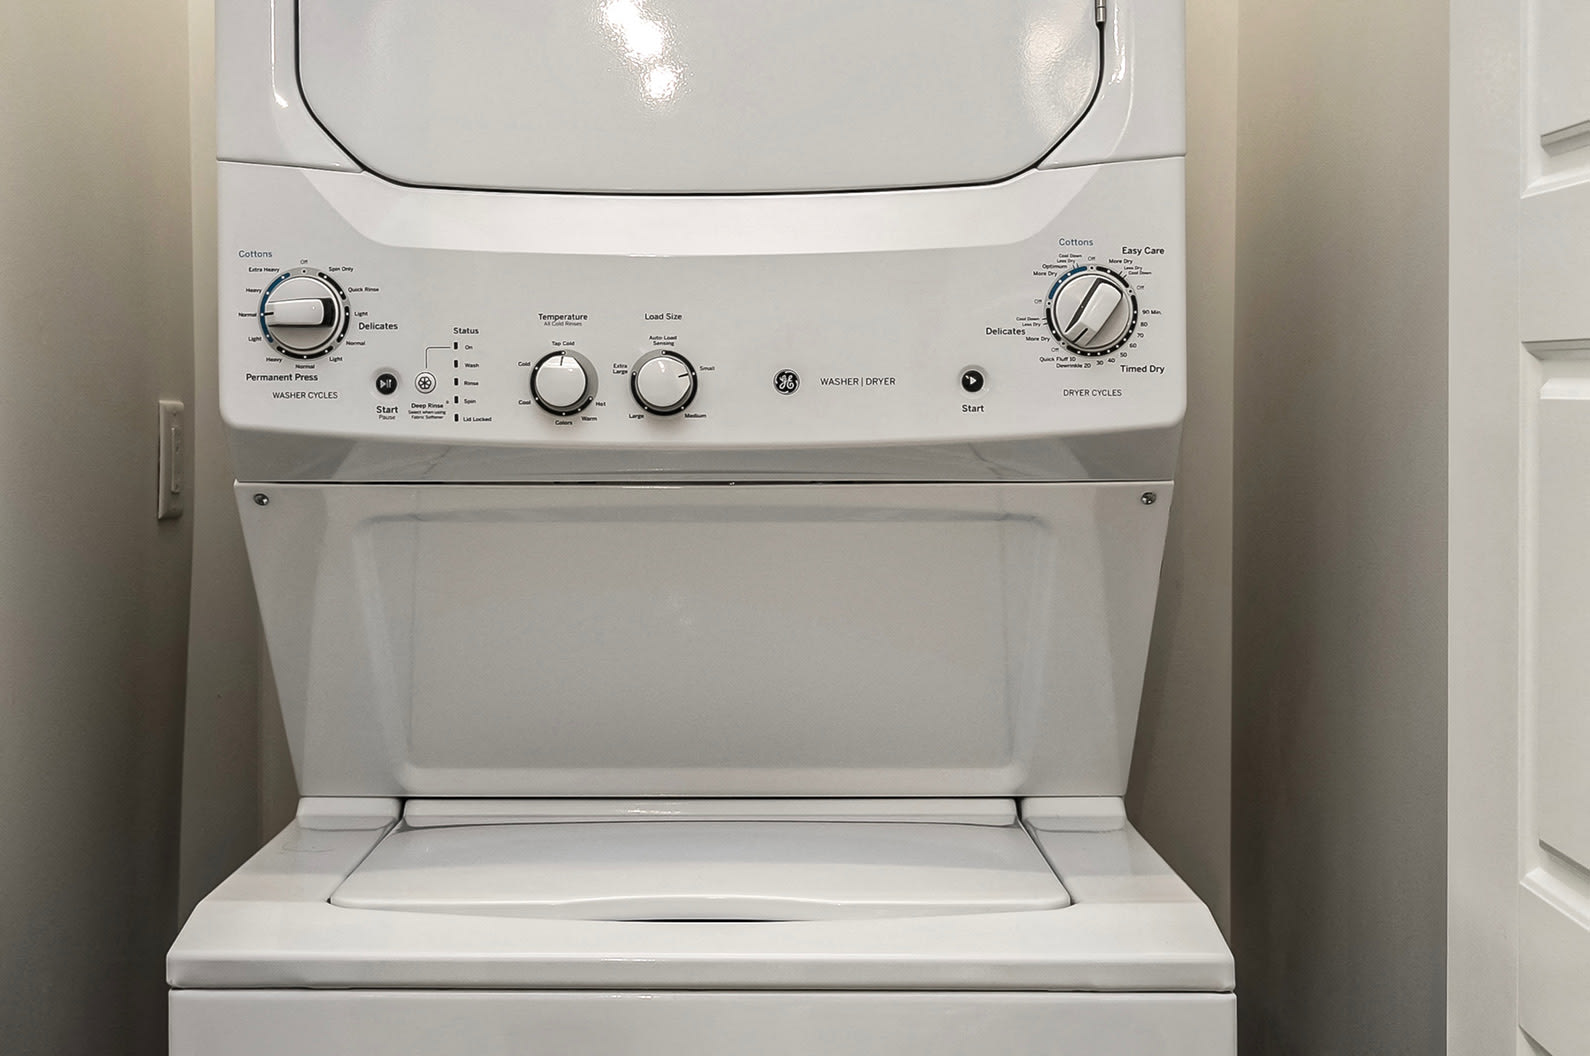 Full Size Washer and Dryer at The Yard in Omaha, NE